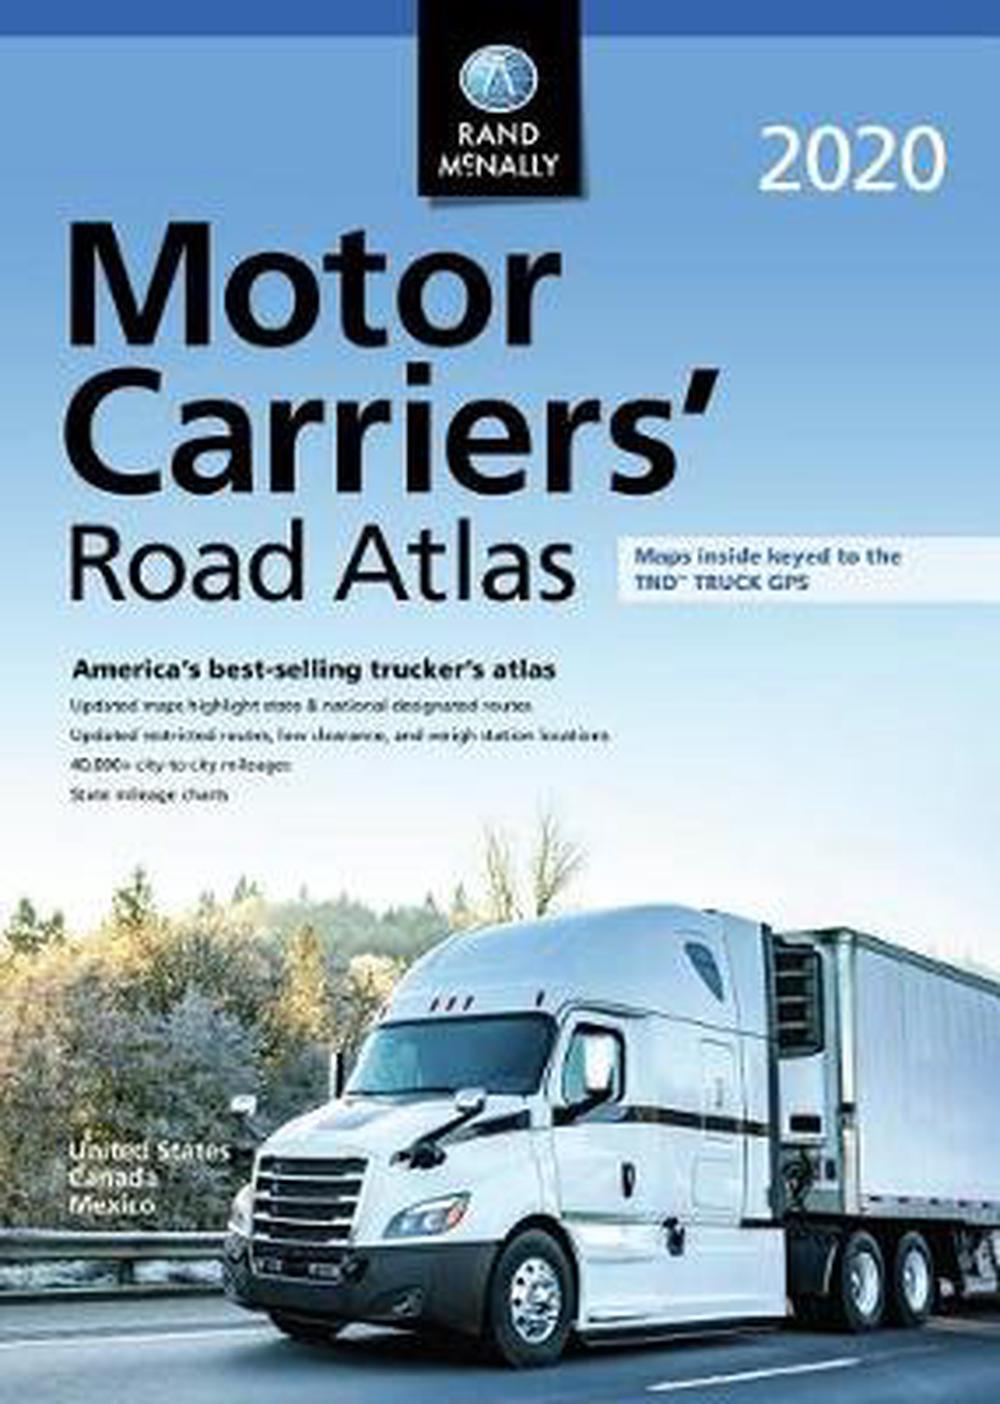 Best Auto Transport Companies 2020.Details About Rand Mcnally 2020 Motor Carriers Road Atlas By Rand Mcnally English Hardcover